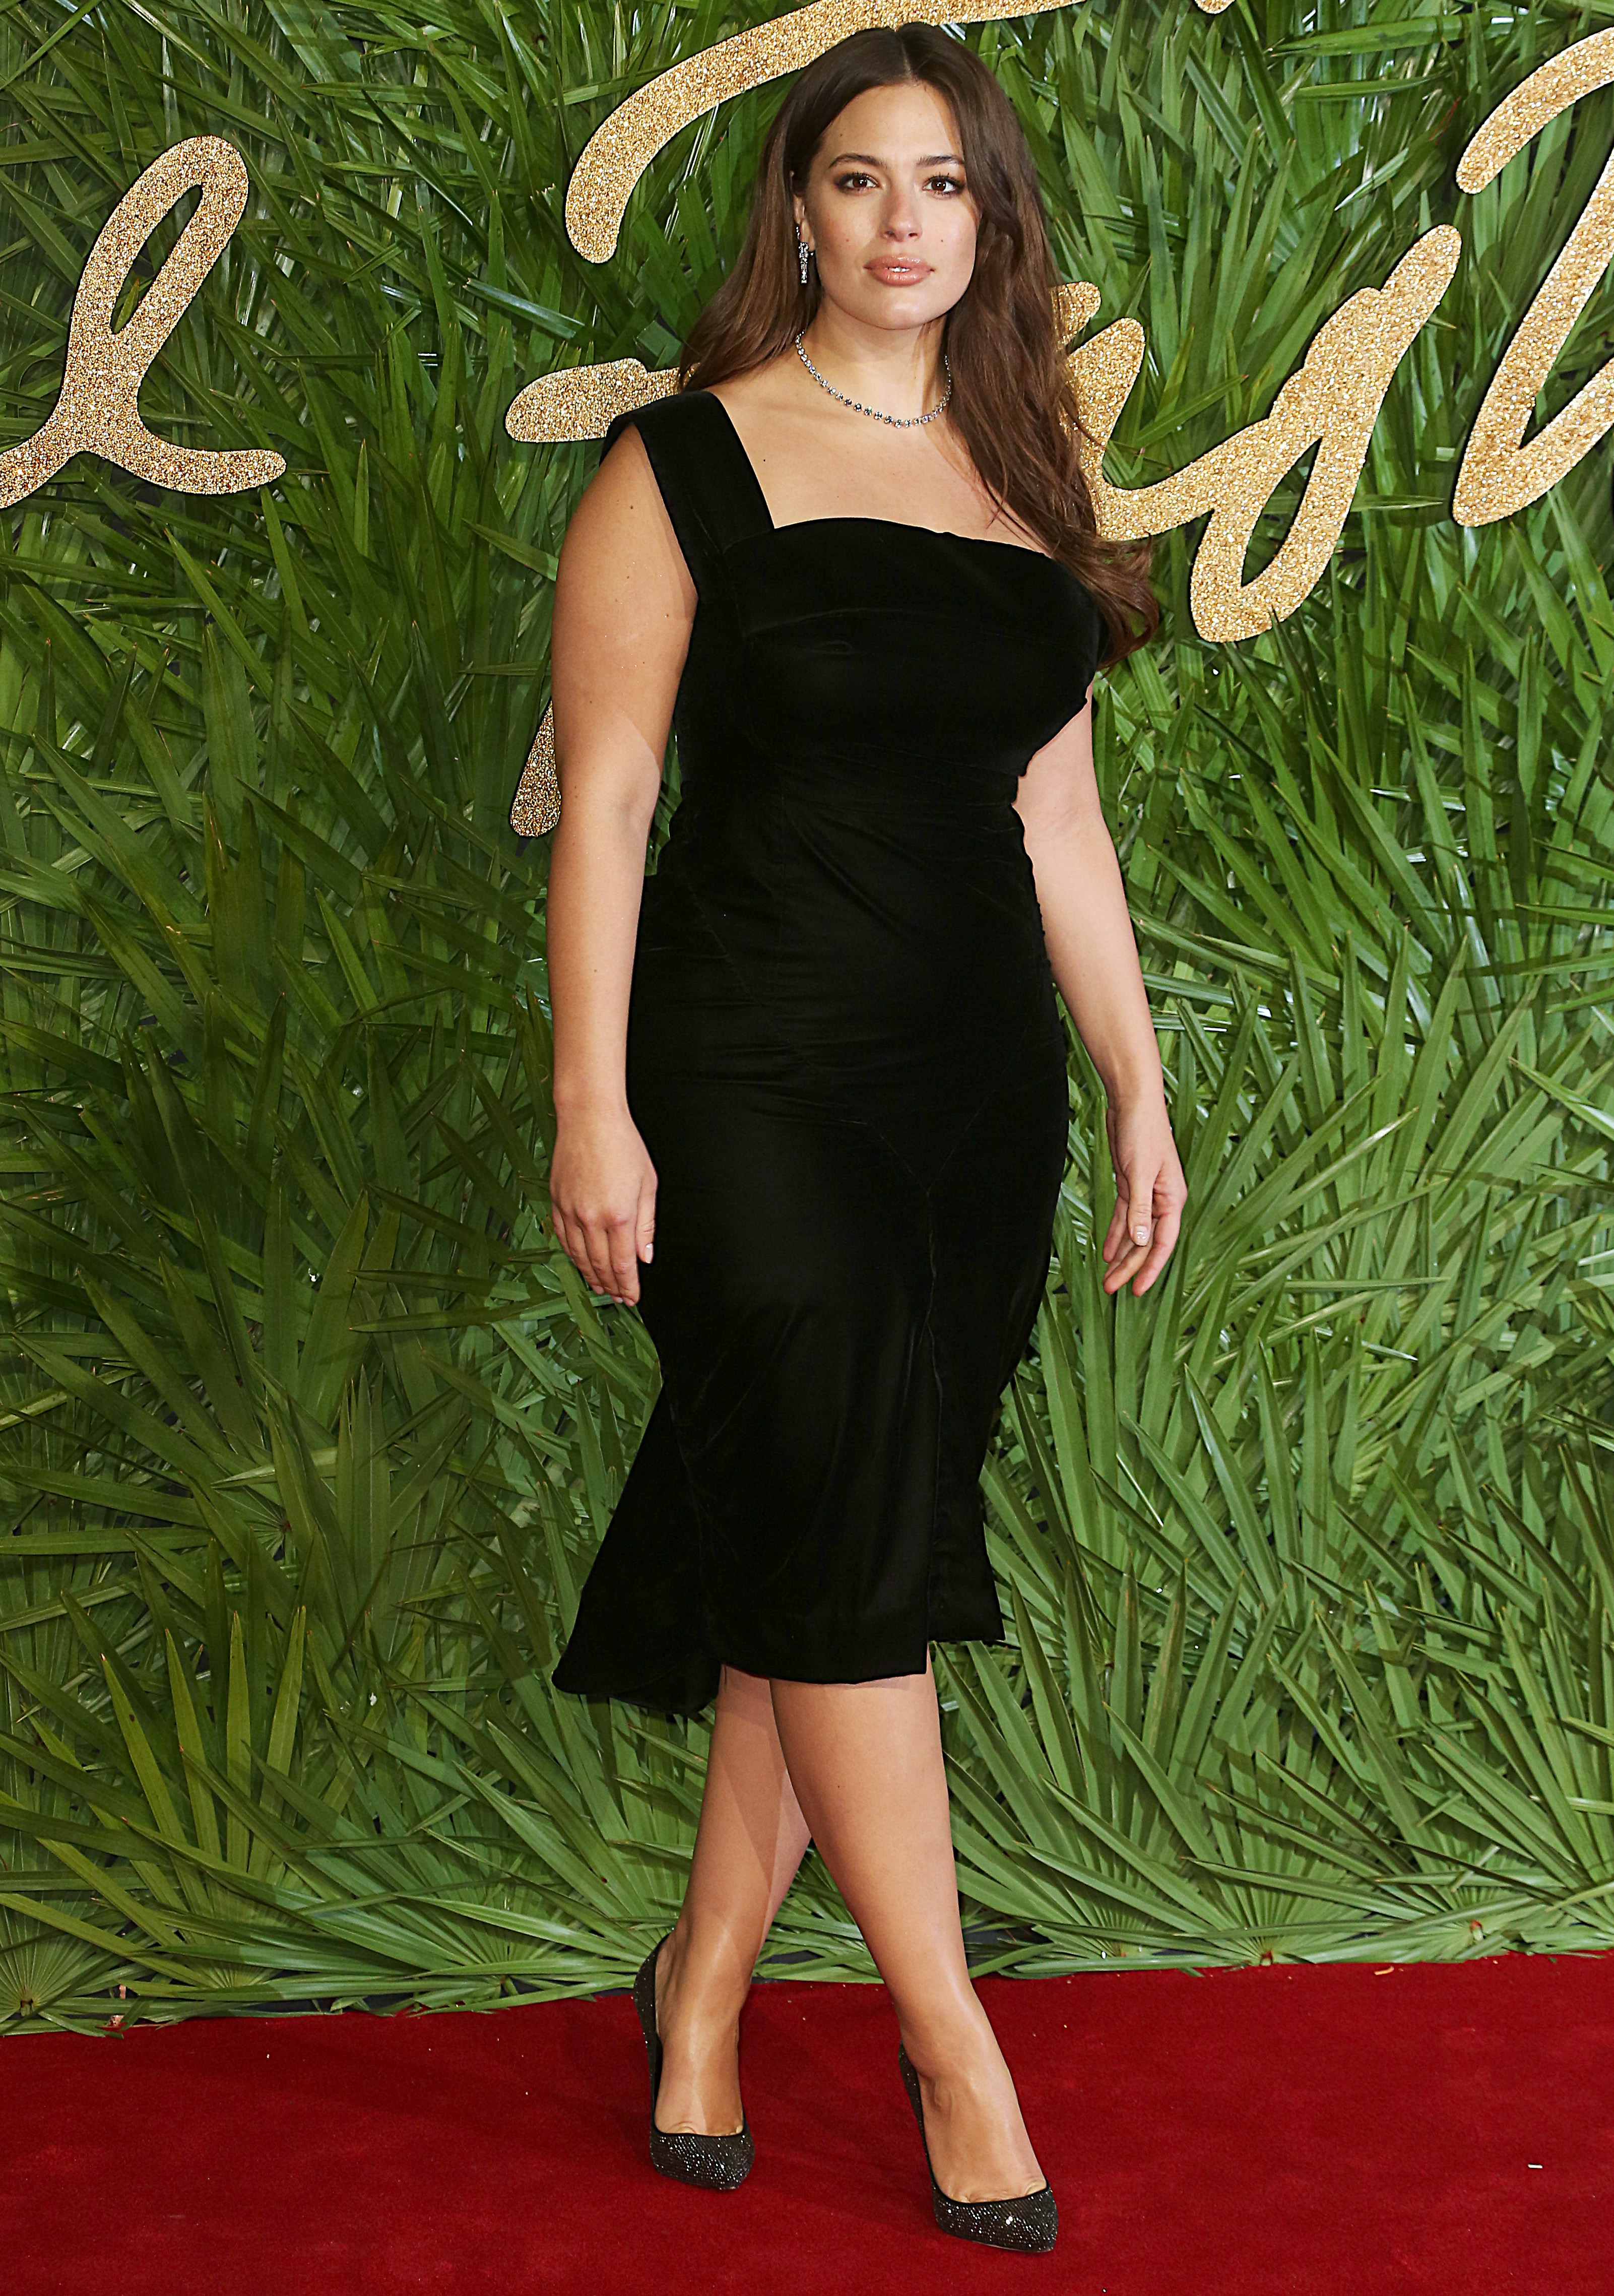 The Fashion Awards 2017, Royal Albert Hall, London UK, 04 December 2017, Photo by Brett D. Cove <P> Pictured: Ashley Graham <B>Ref: SPL1632930  051217  </B><BR/> Picture by: Brett D. Cove / Splash News<BR/> </P><P> <B>Splash News and Pictures</B><BR/> Los Angeles:310-821-2666<BR/> New York:212-619-2666<BR/> London:870-934-2666<BR/> <span id=